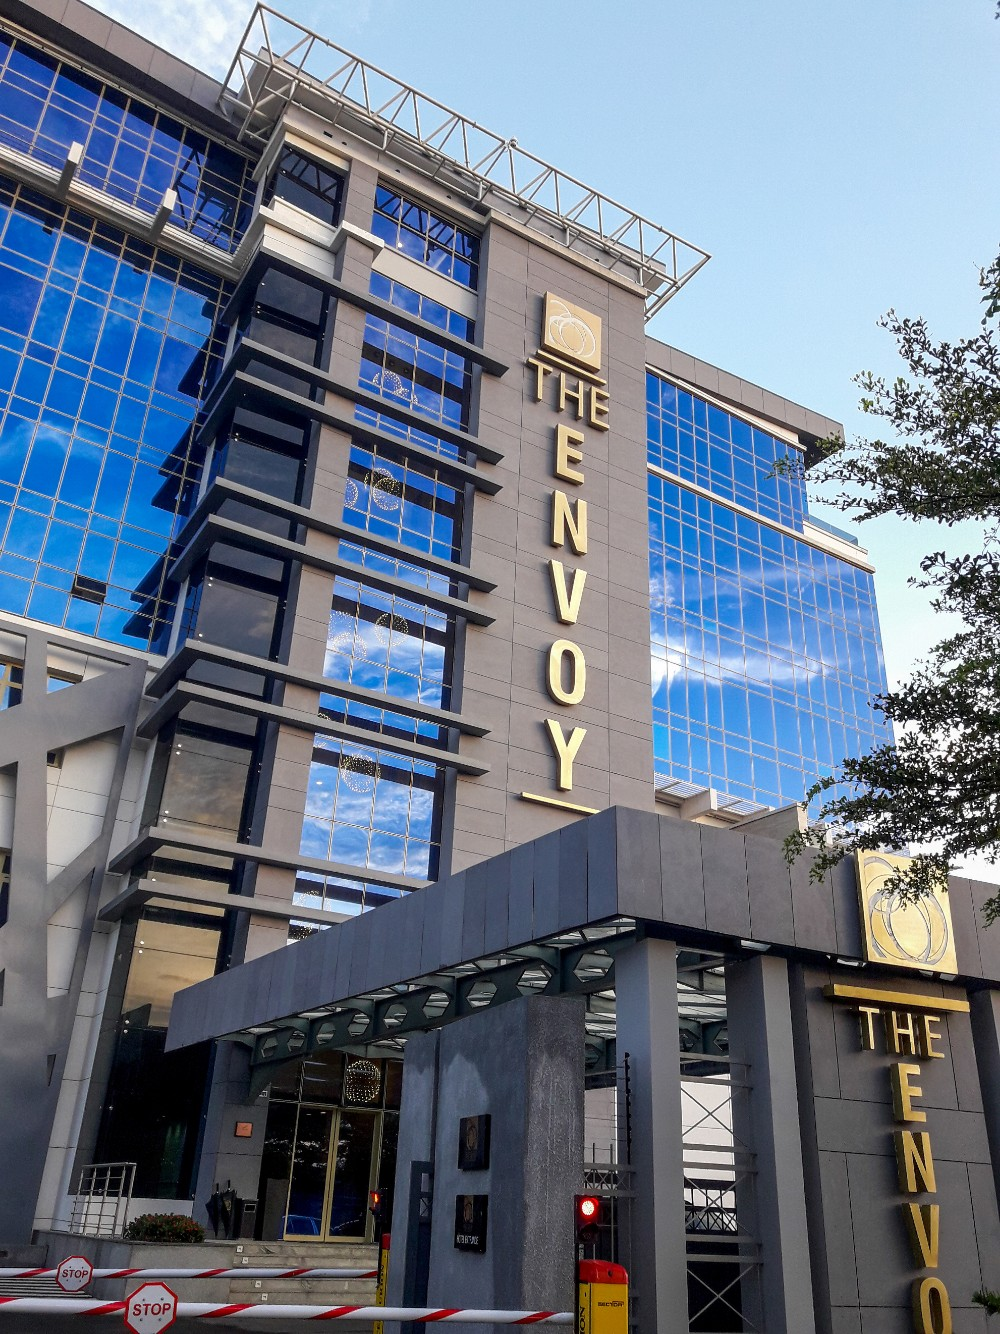 hotels in Abuja, the Envoy hotel